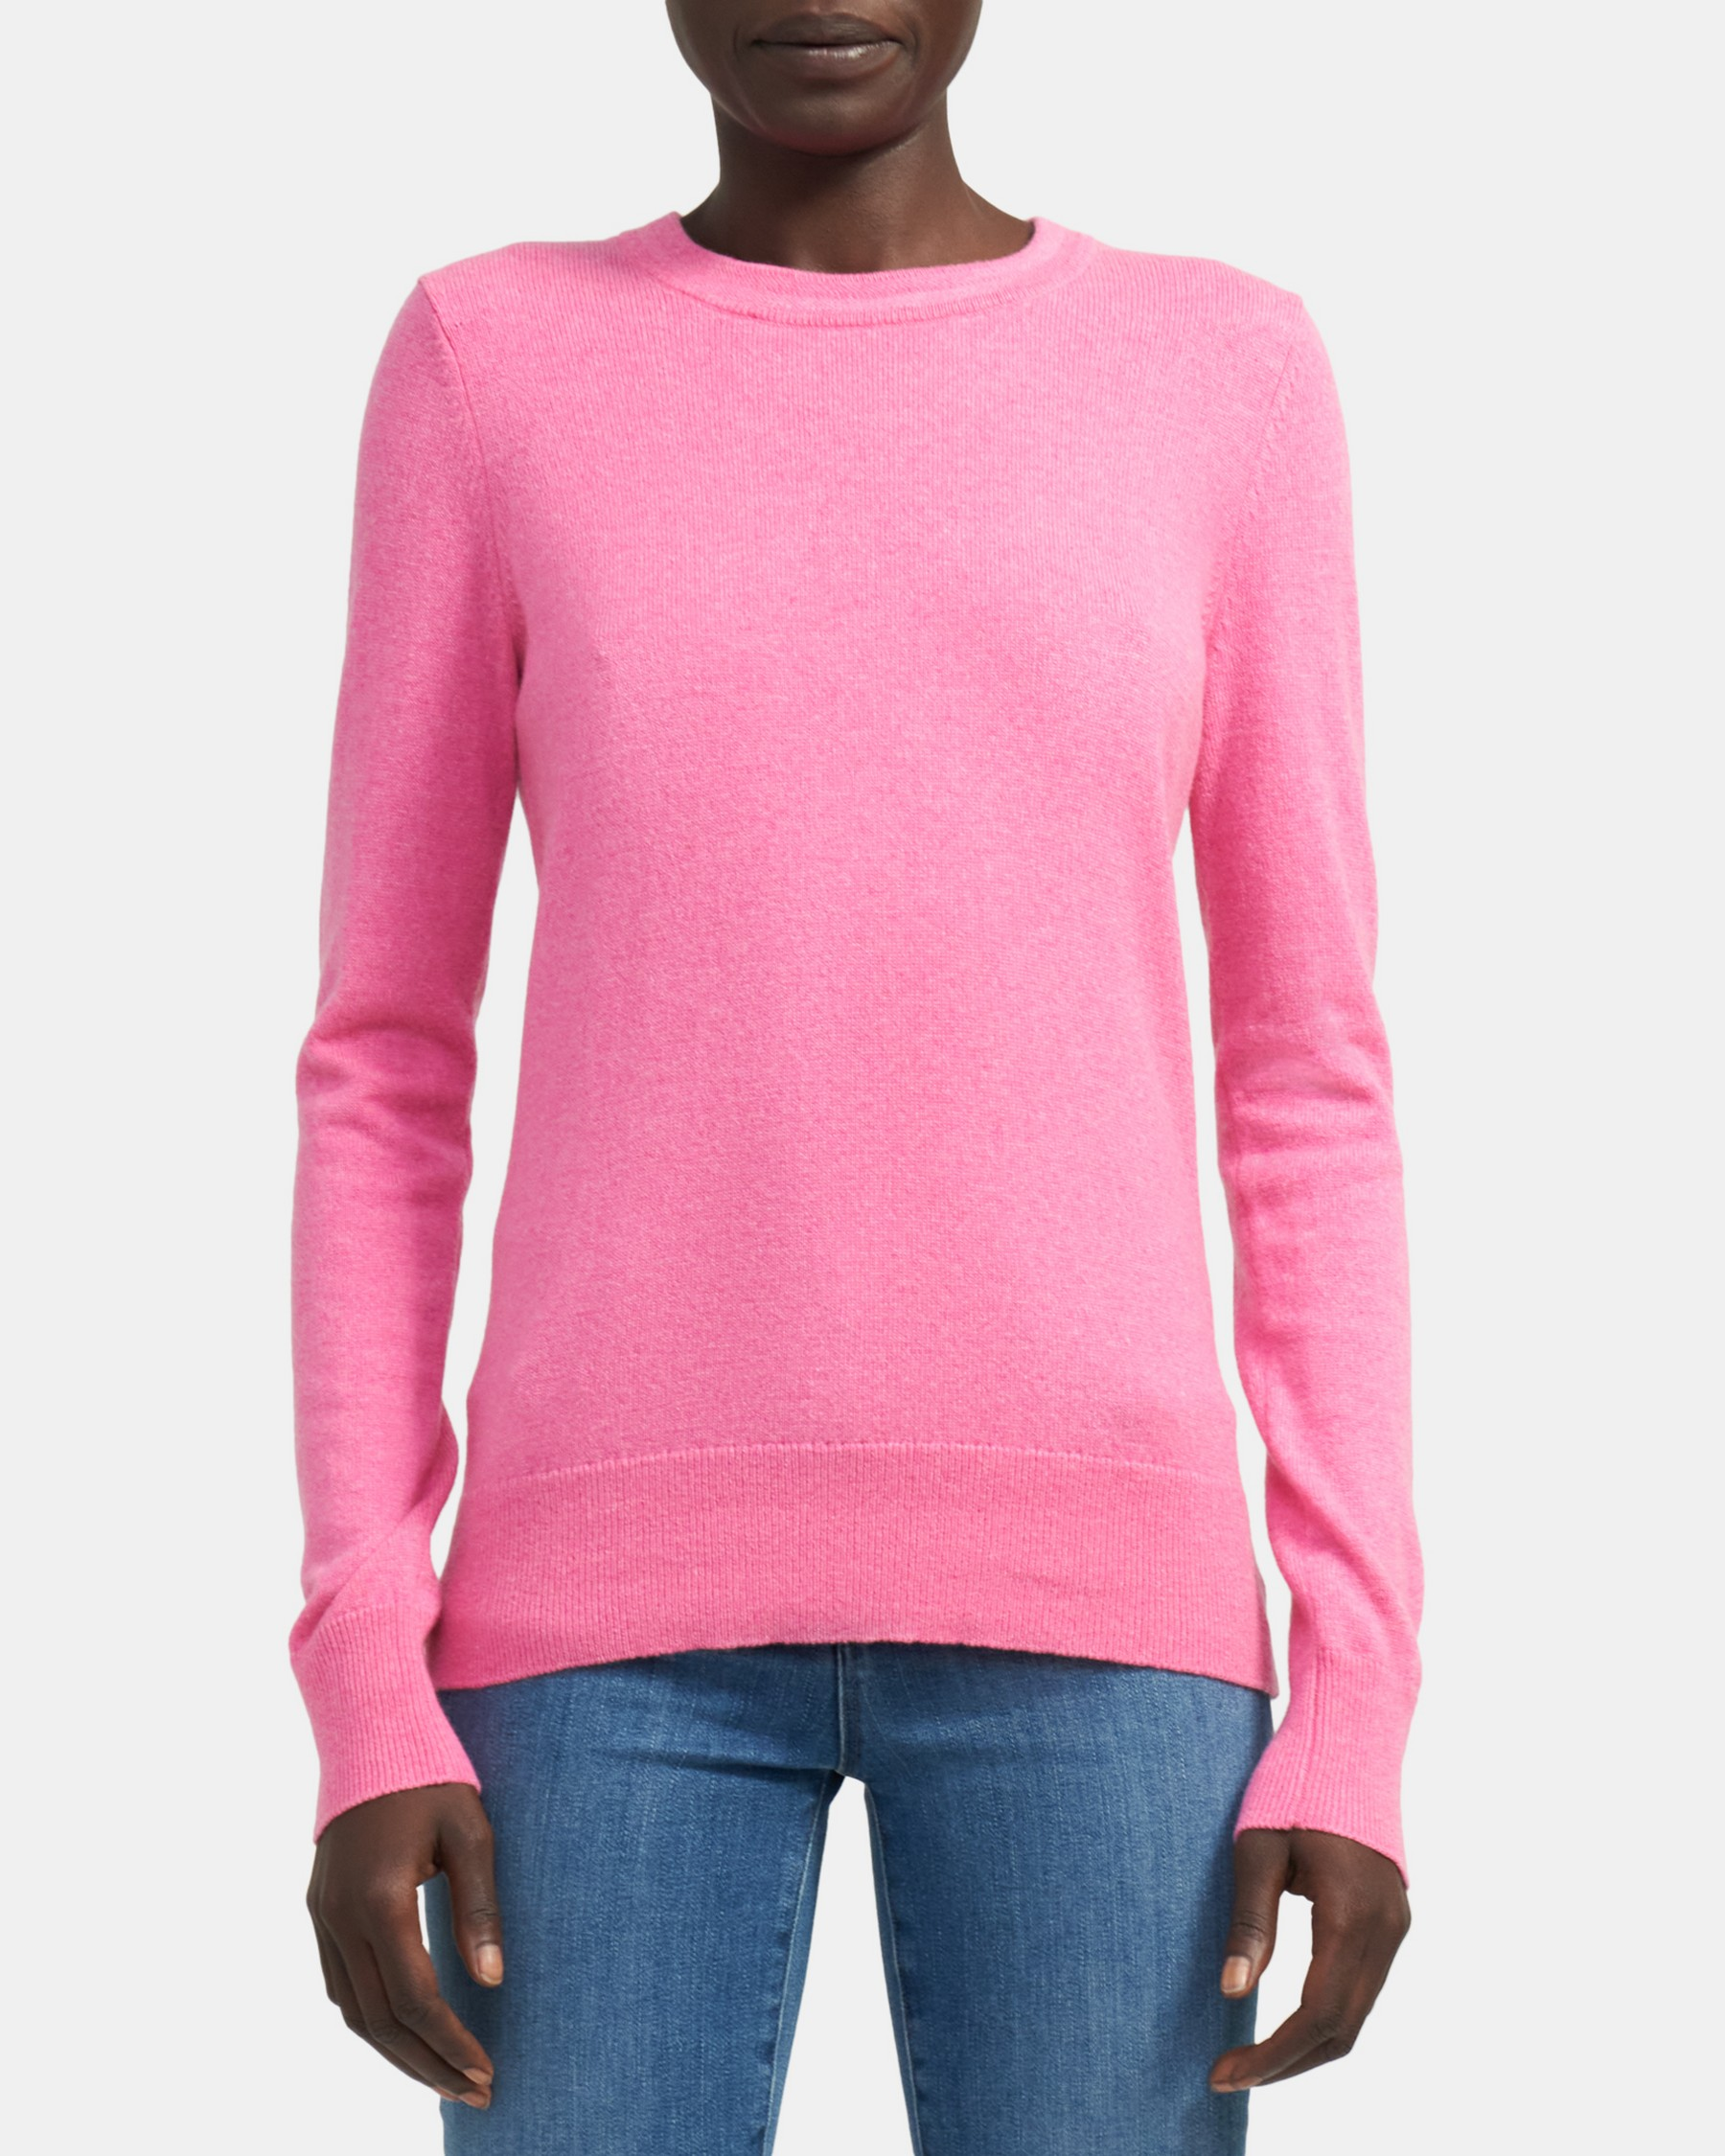 Cashmere Knit Long-Sleeve Tee   Theory